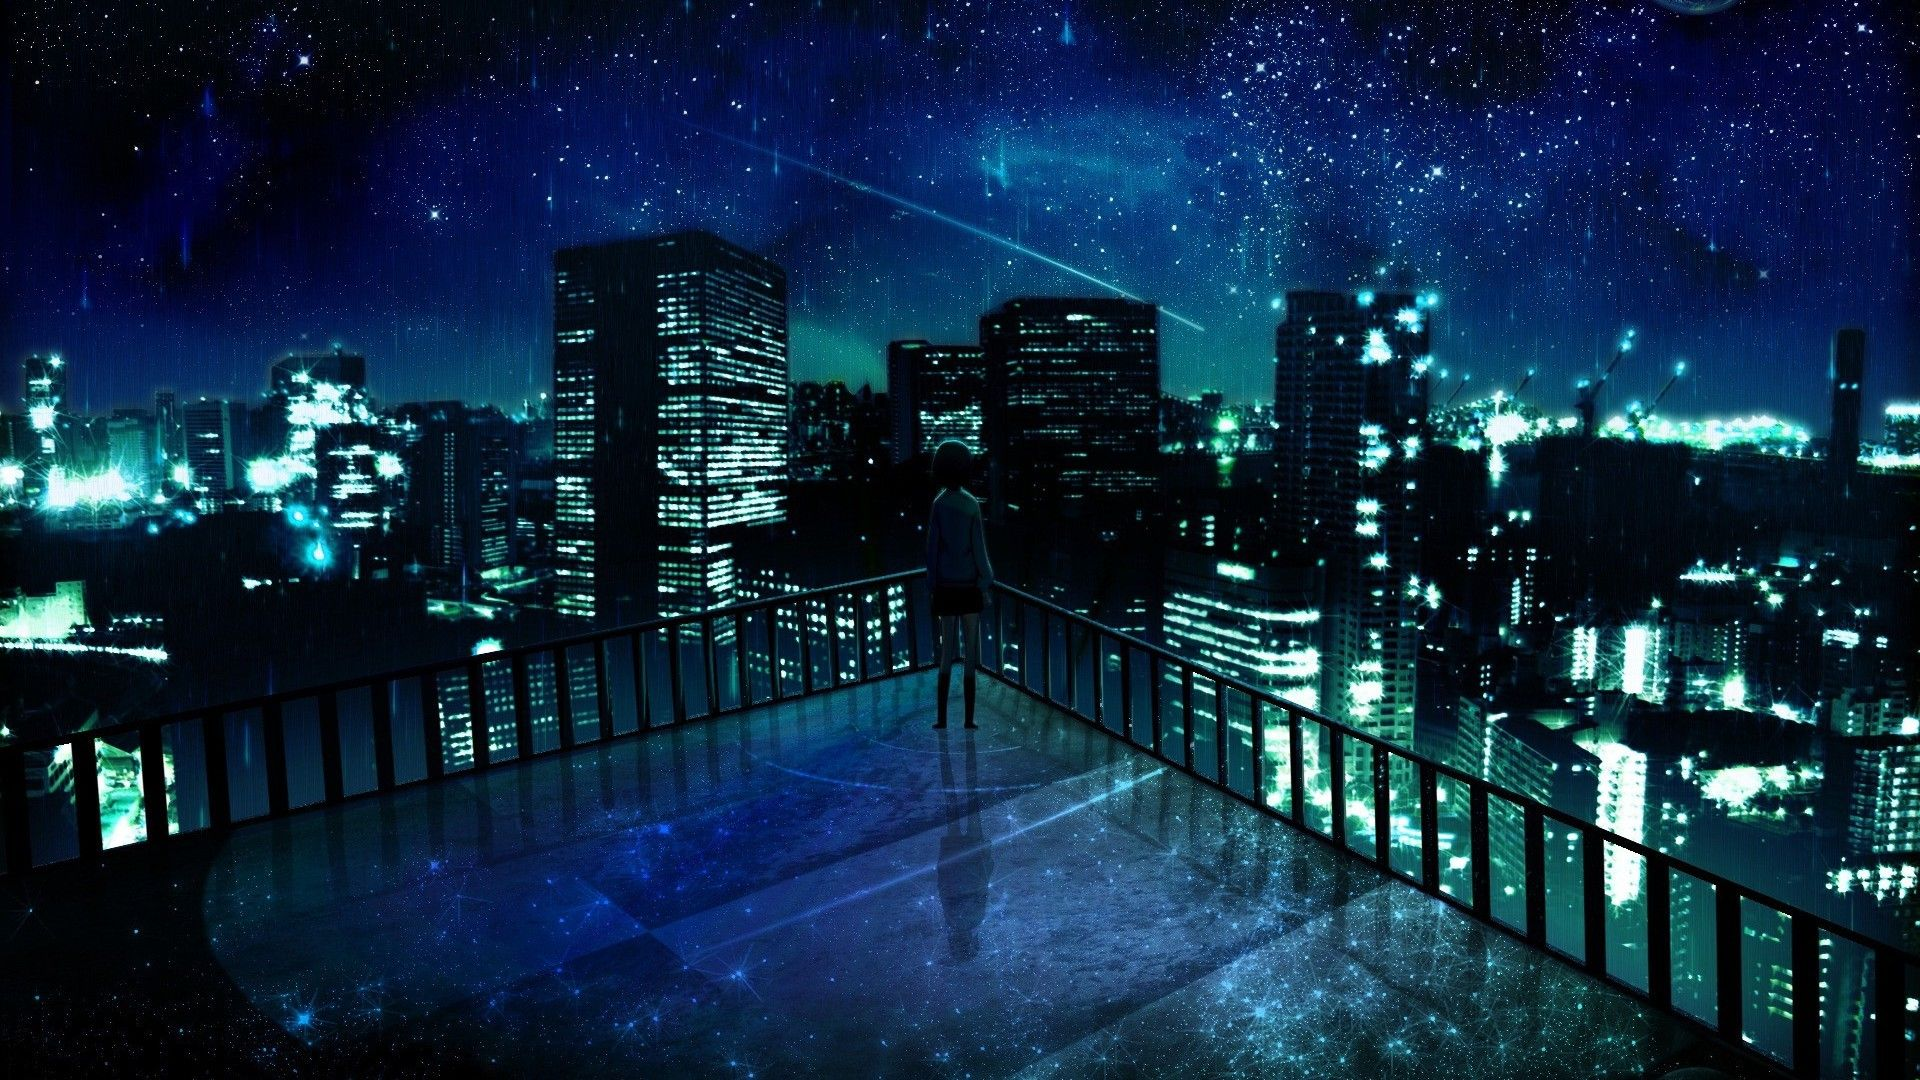 Stunning Anime City Wallpaper  Anime Stars Sky Anime Blue Anime Anime City